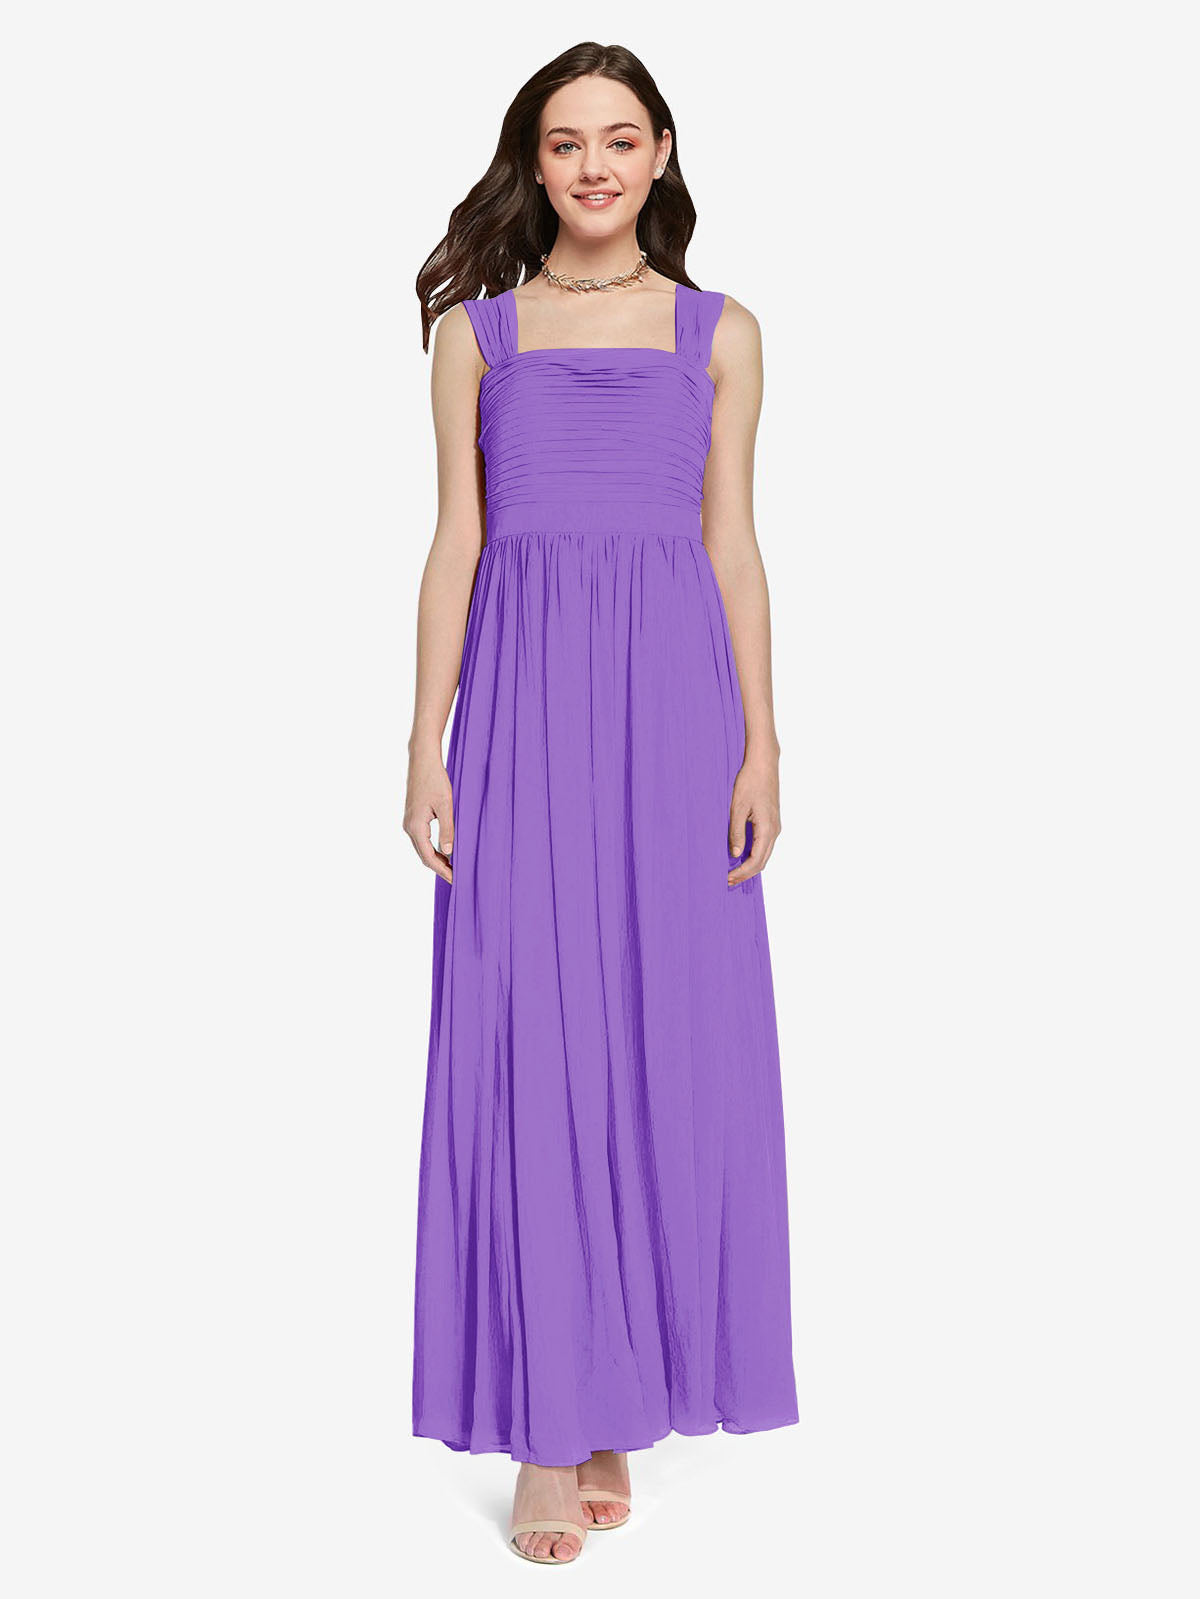 Long A-Line Square Sleeveless Tahiti Chiffon Bridesmaid Dress Aldridge